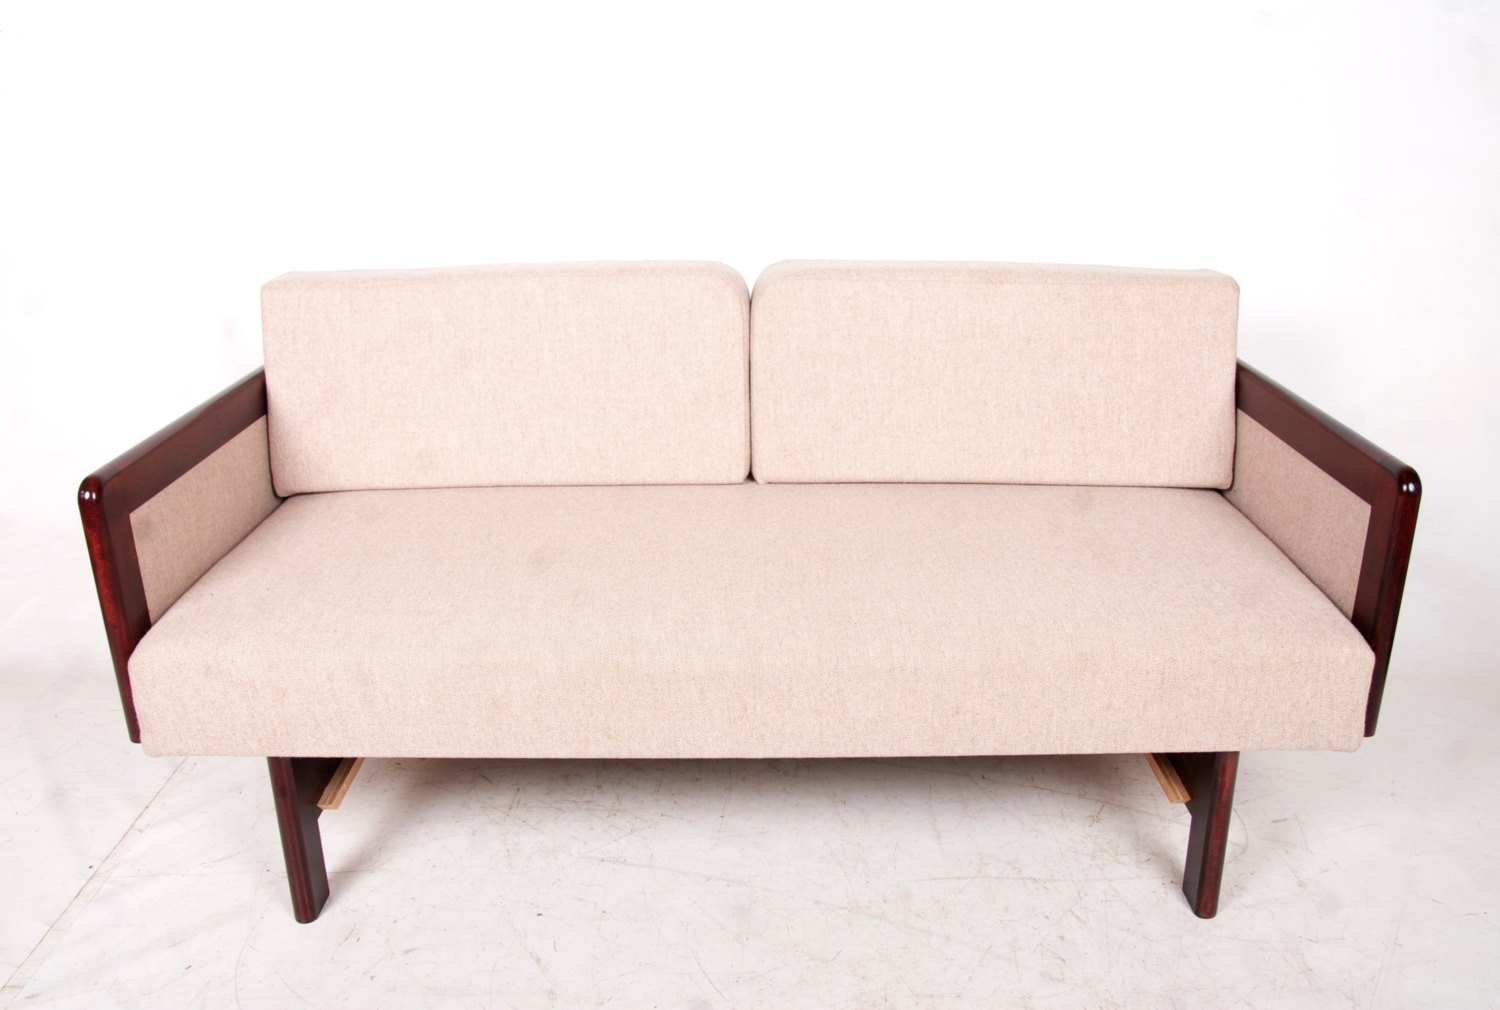 Retro Vintage Danish Rosewood Sofa Bed Day Bed Tweed Modular Studio Couch Single Daybed 1950s